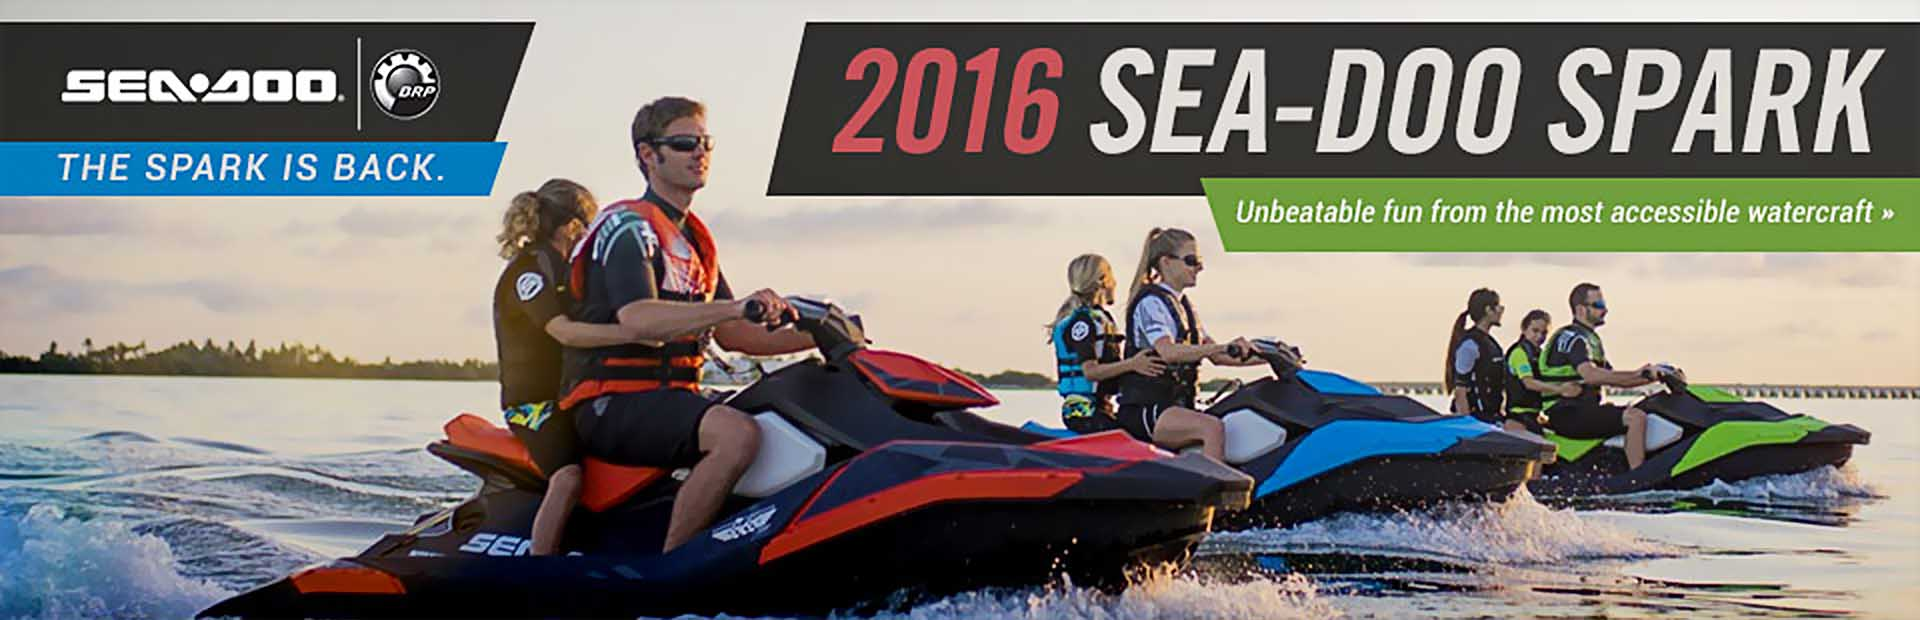 2016 Sea-Doo Spark: Click here to view the models.